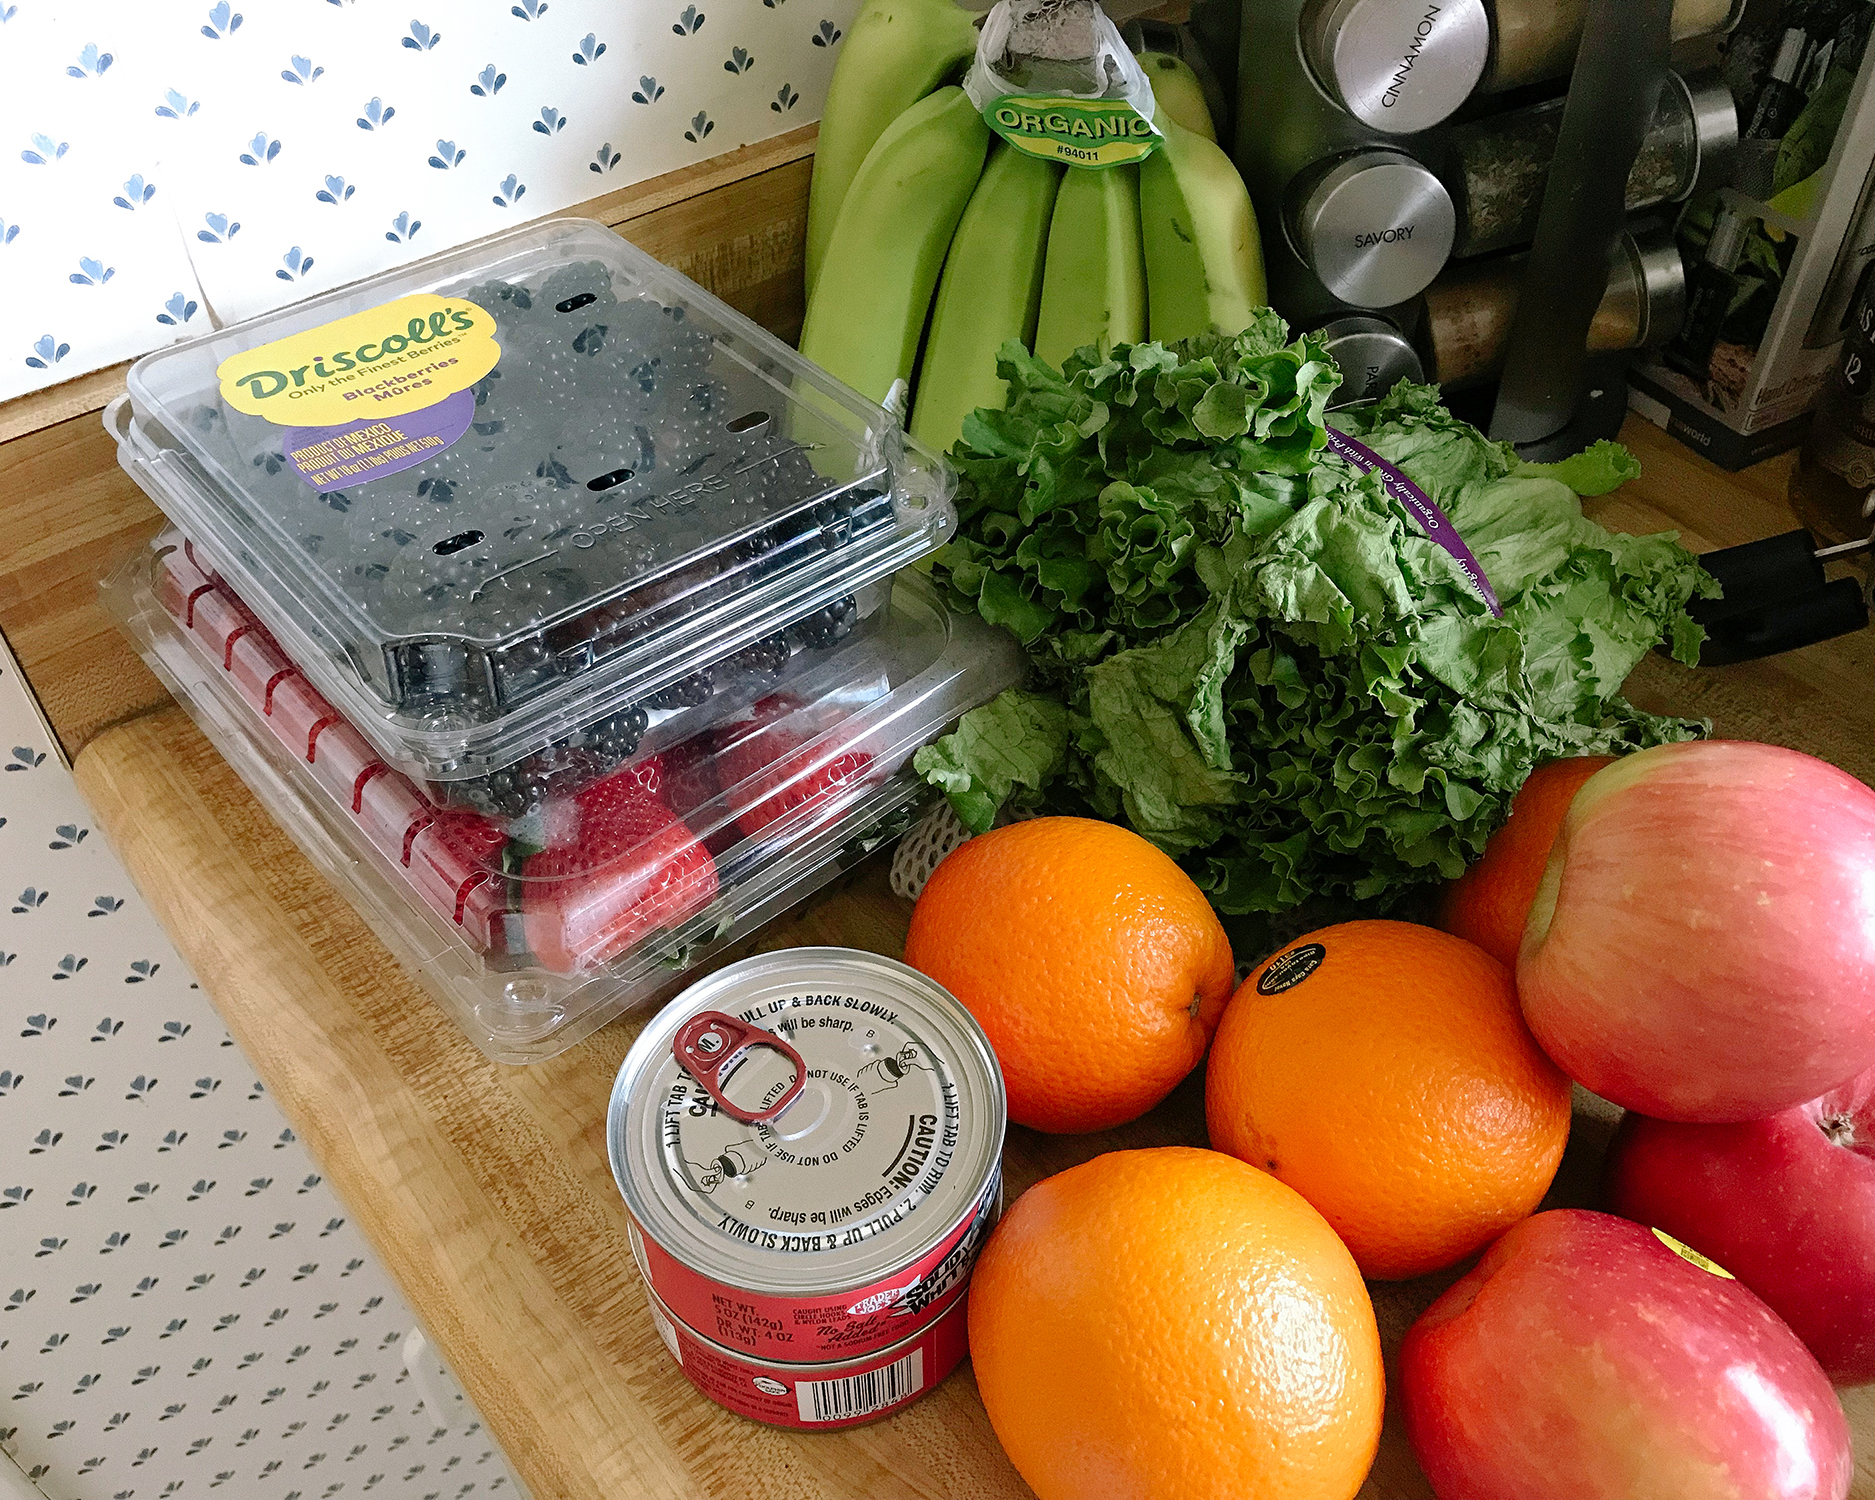 Photo of my grocery for the week: fruits, veggies, and a tuna can